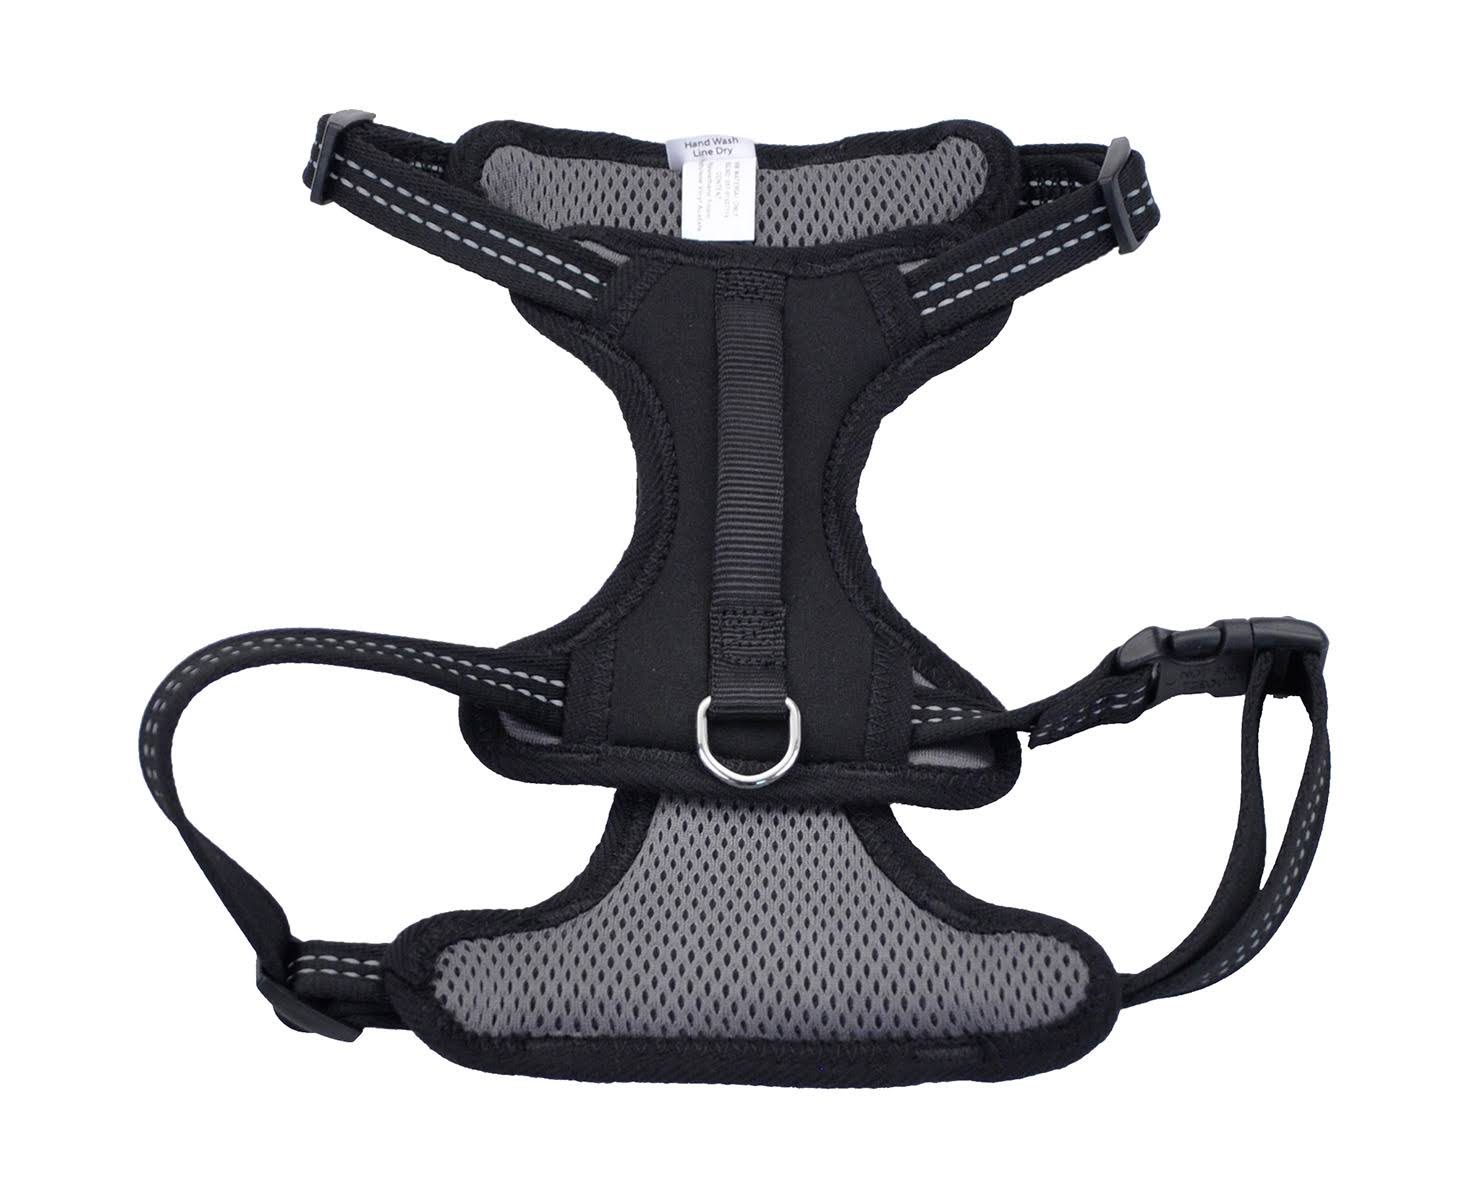 Coastal Reflective Control Handle Harness - Black, Medium